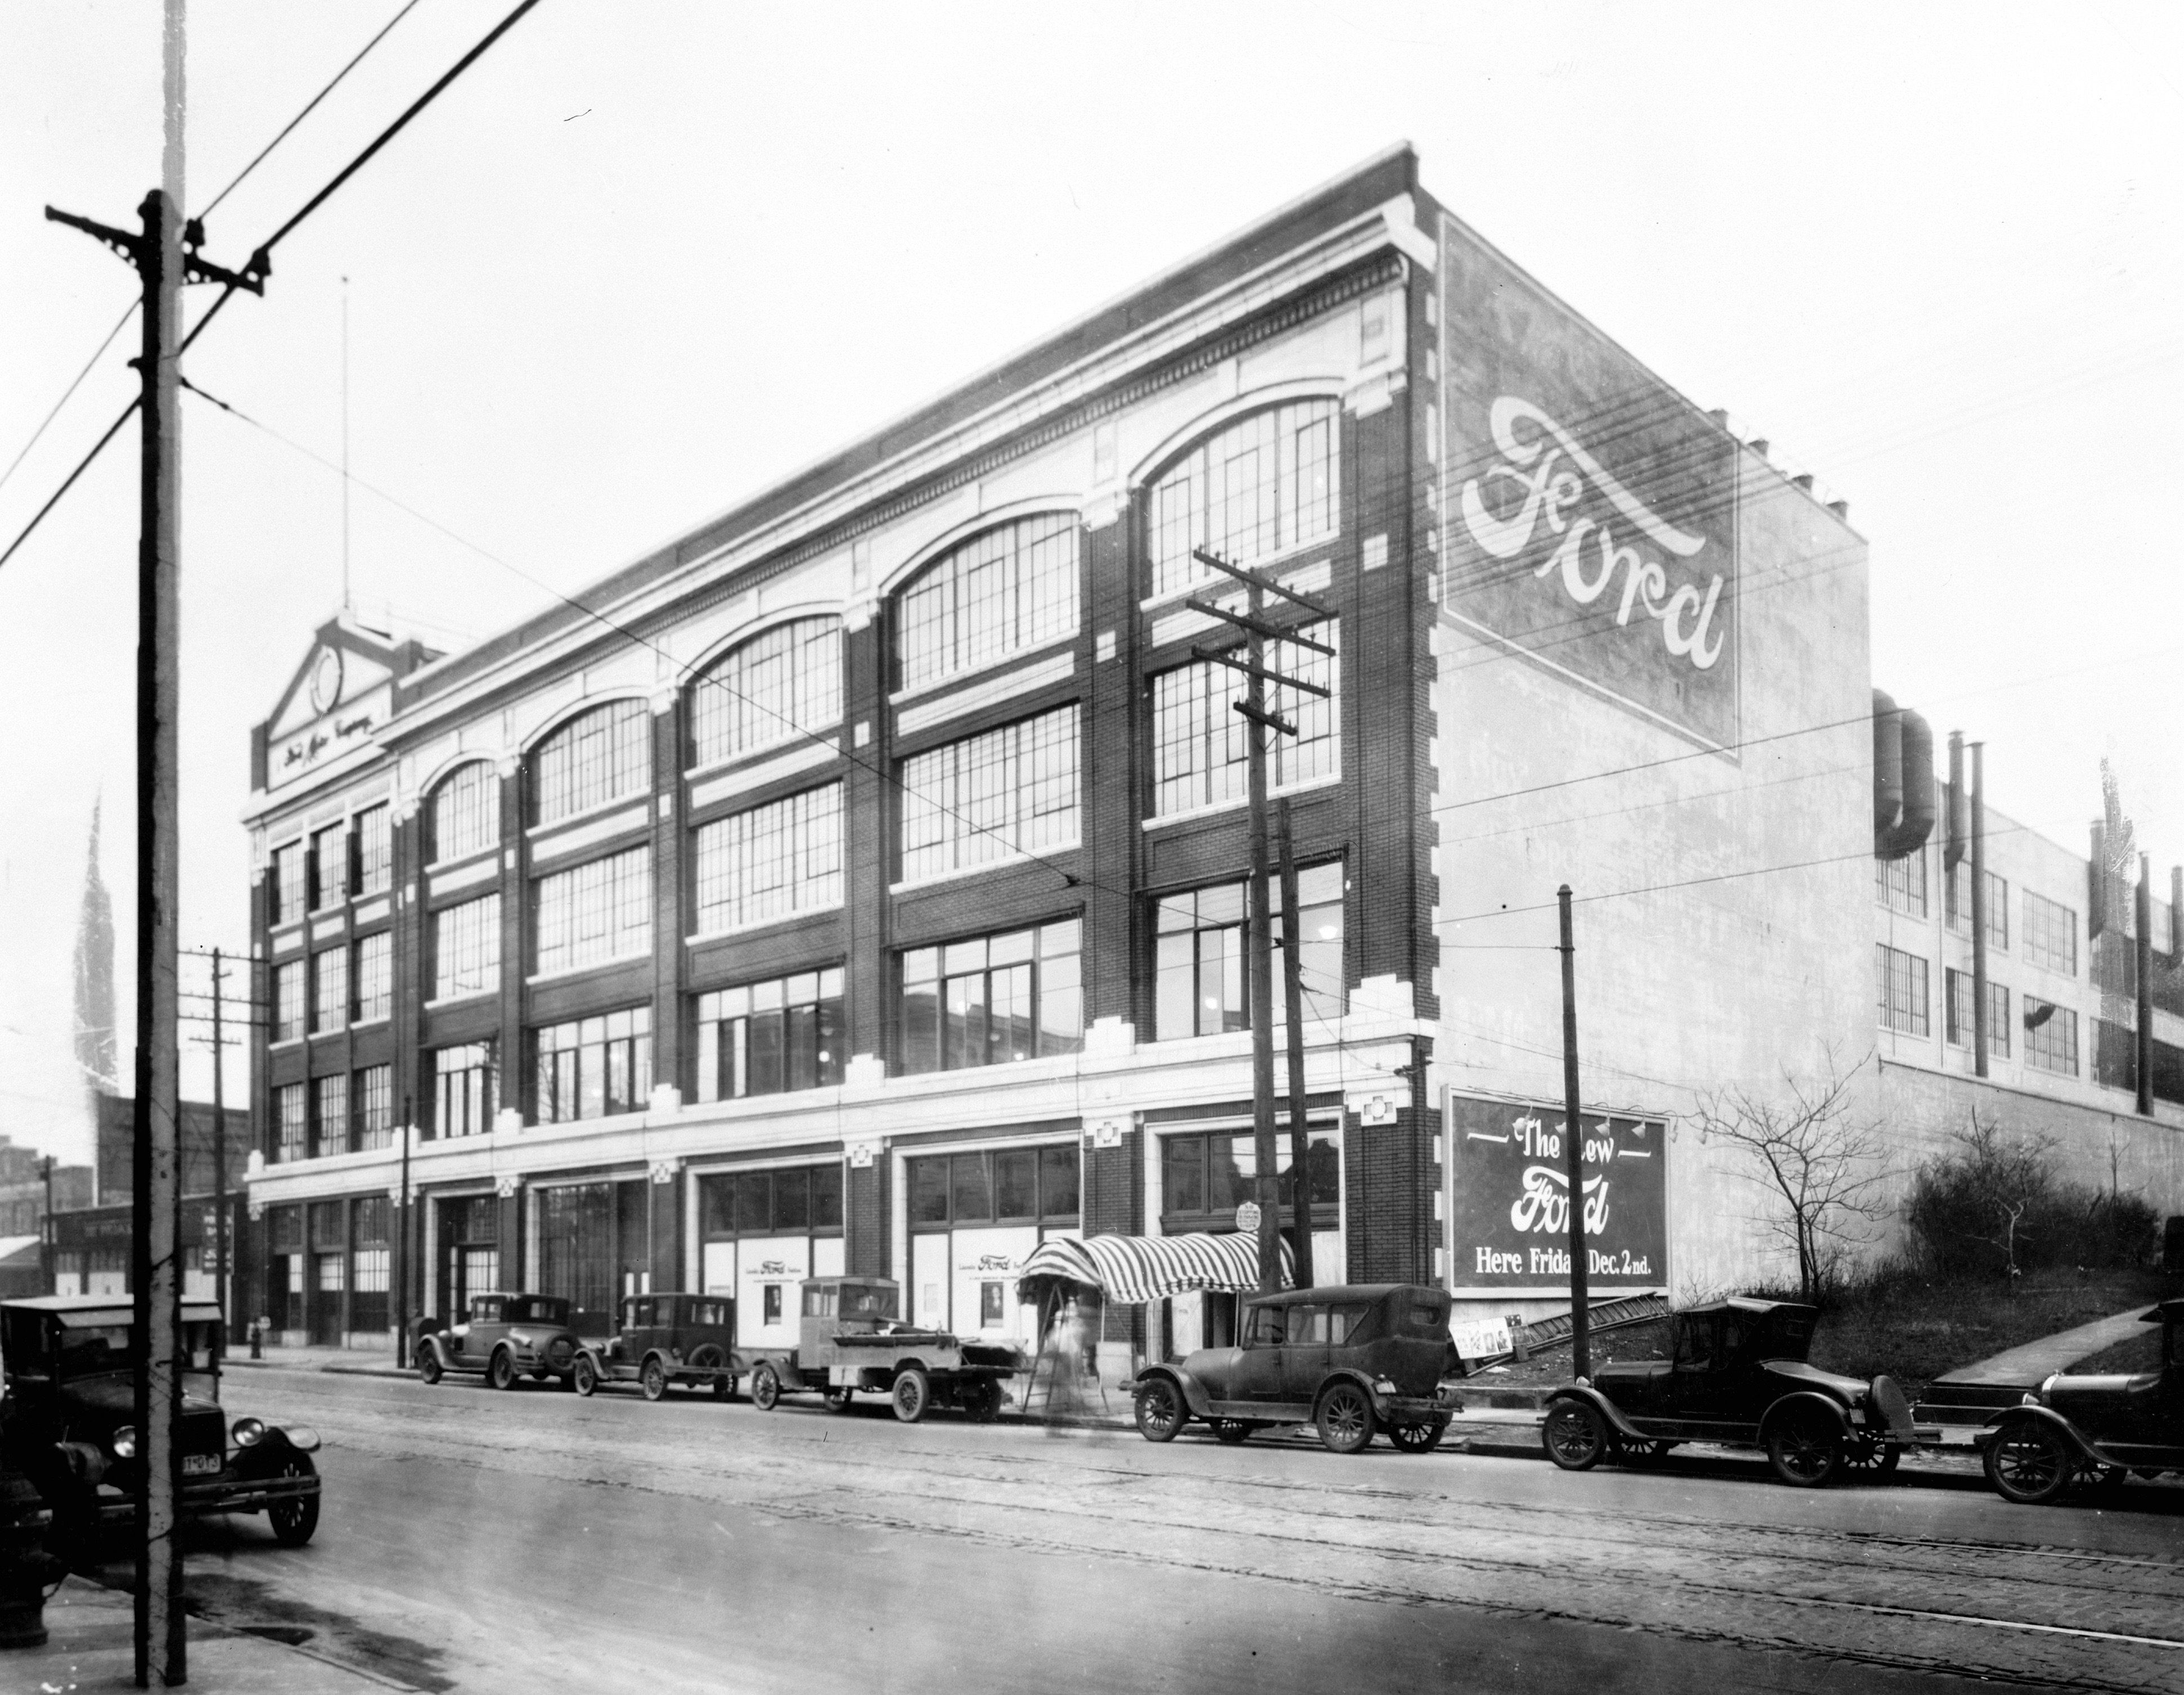 Cleveland S Ford Motor Company Assembly Part In The 1920s Ford